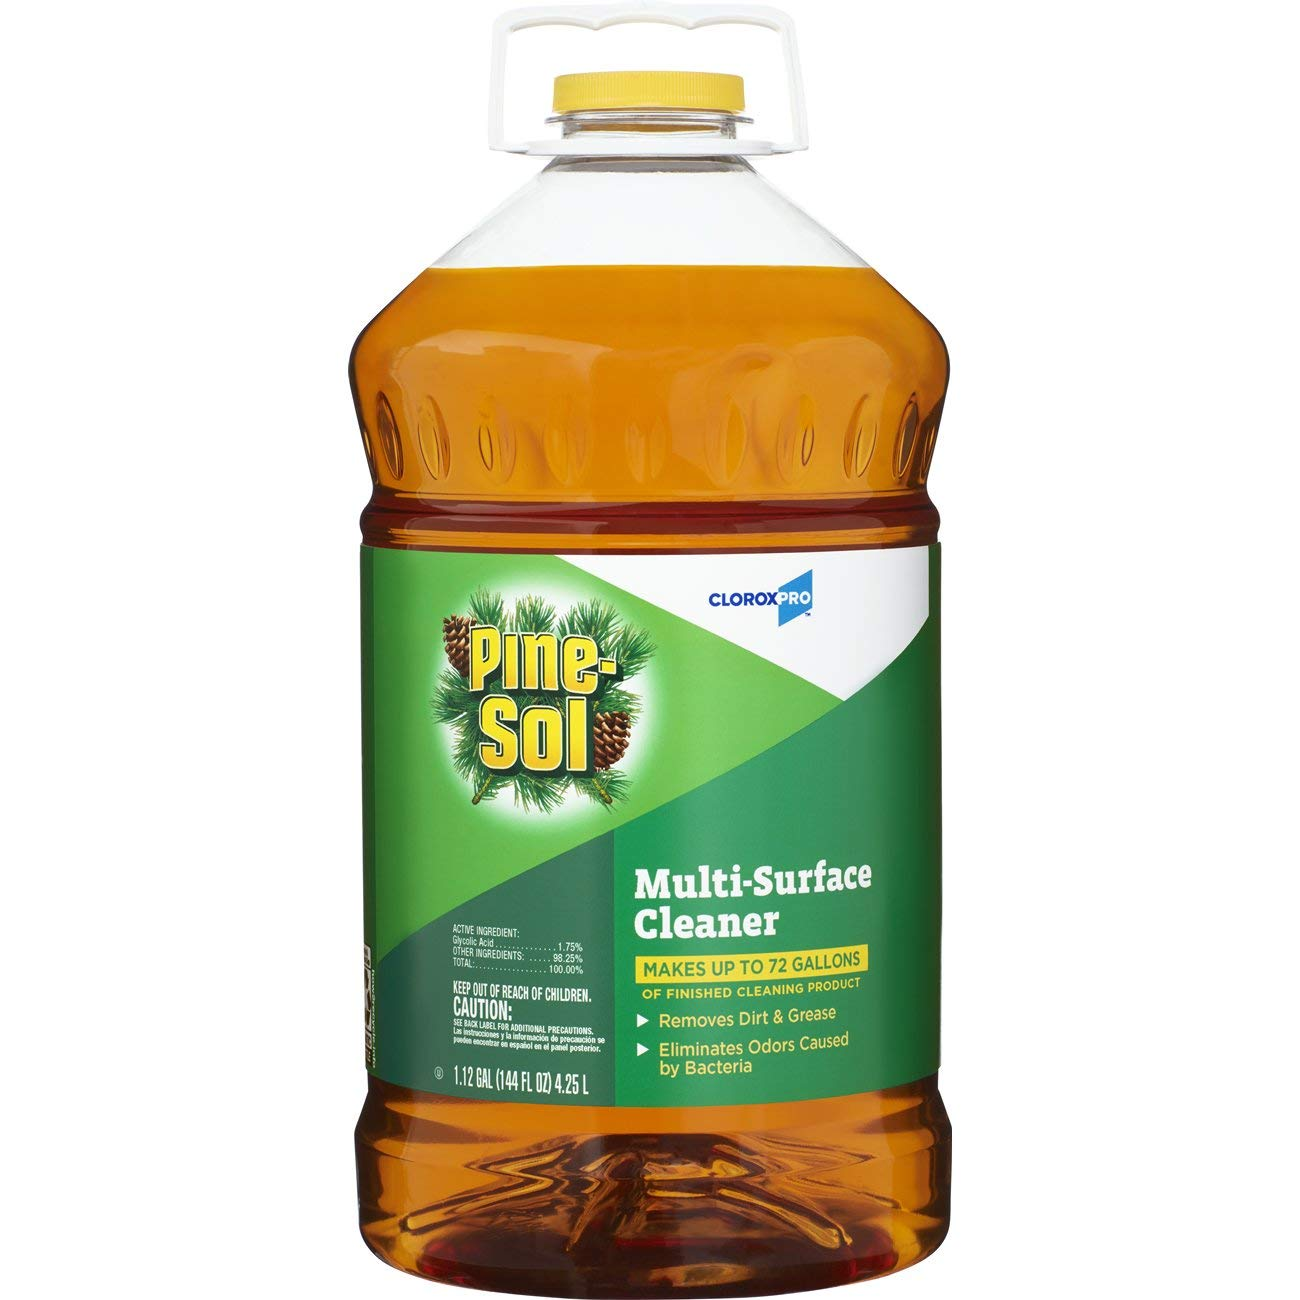 Pine-Sol Multi-Surface CloroxPro Cleaner, Original Pine, 144 Ounce Bottle (35418) (Packaging May Vary) by Clorox